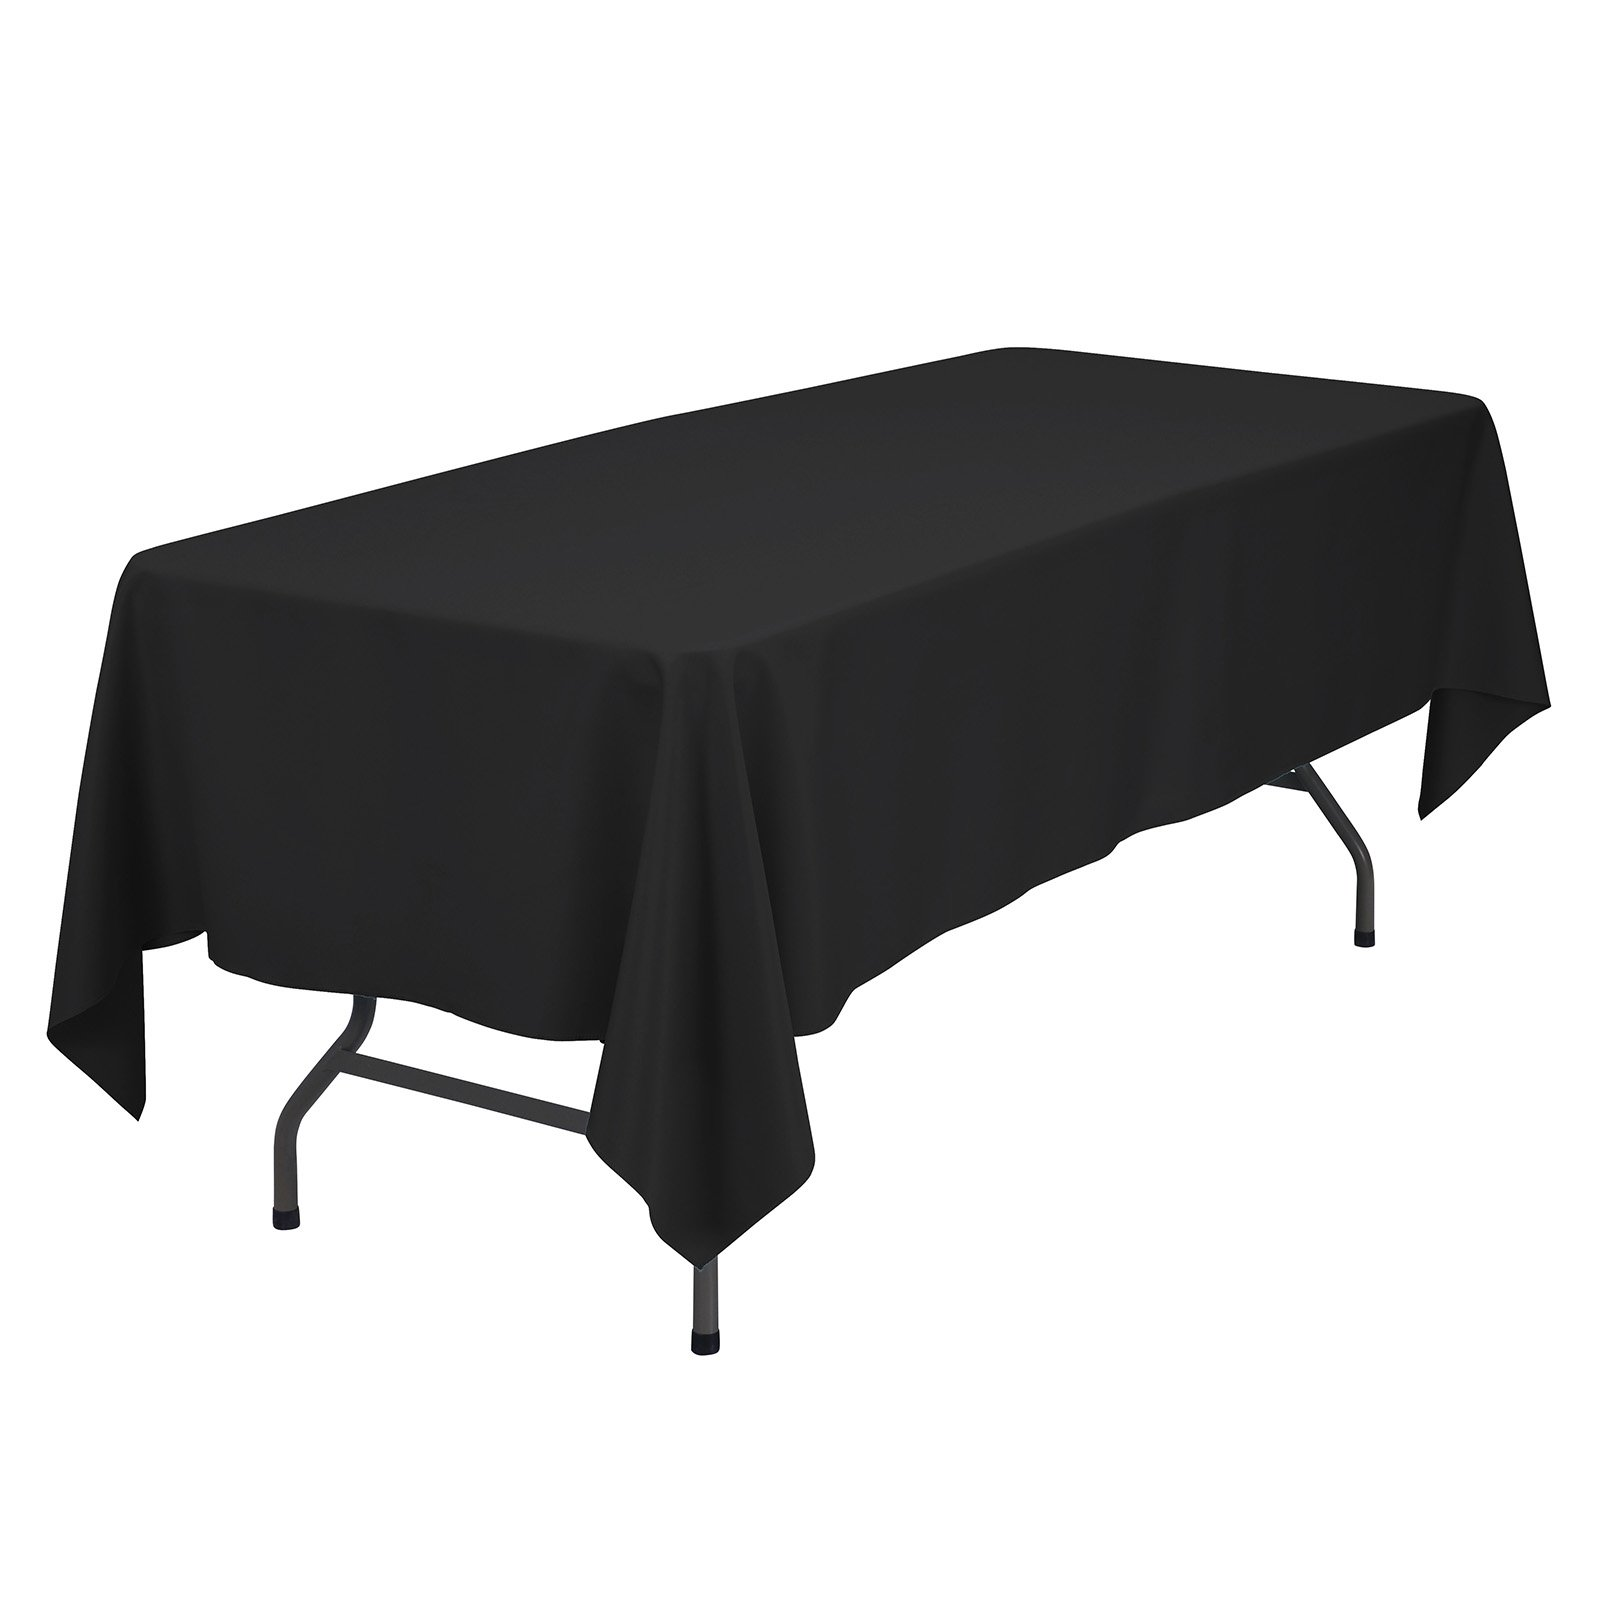 VEEYOO 60 x 102 inch Rectangular Solid Polyester Tablecloth for Wedding Restaurant Party Rectangle/Oblong/Oval Table, Black